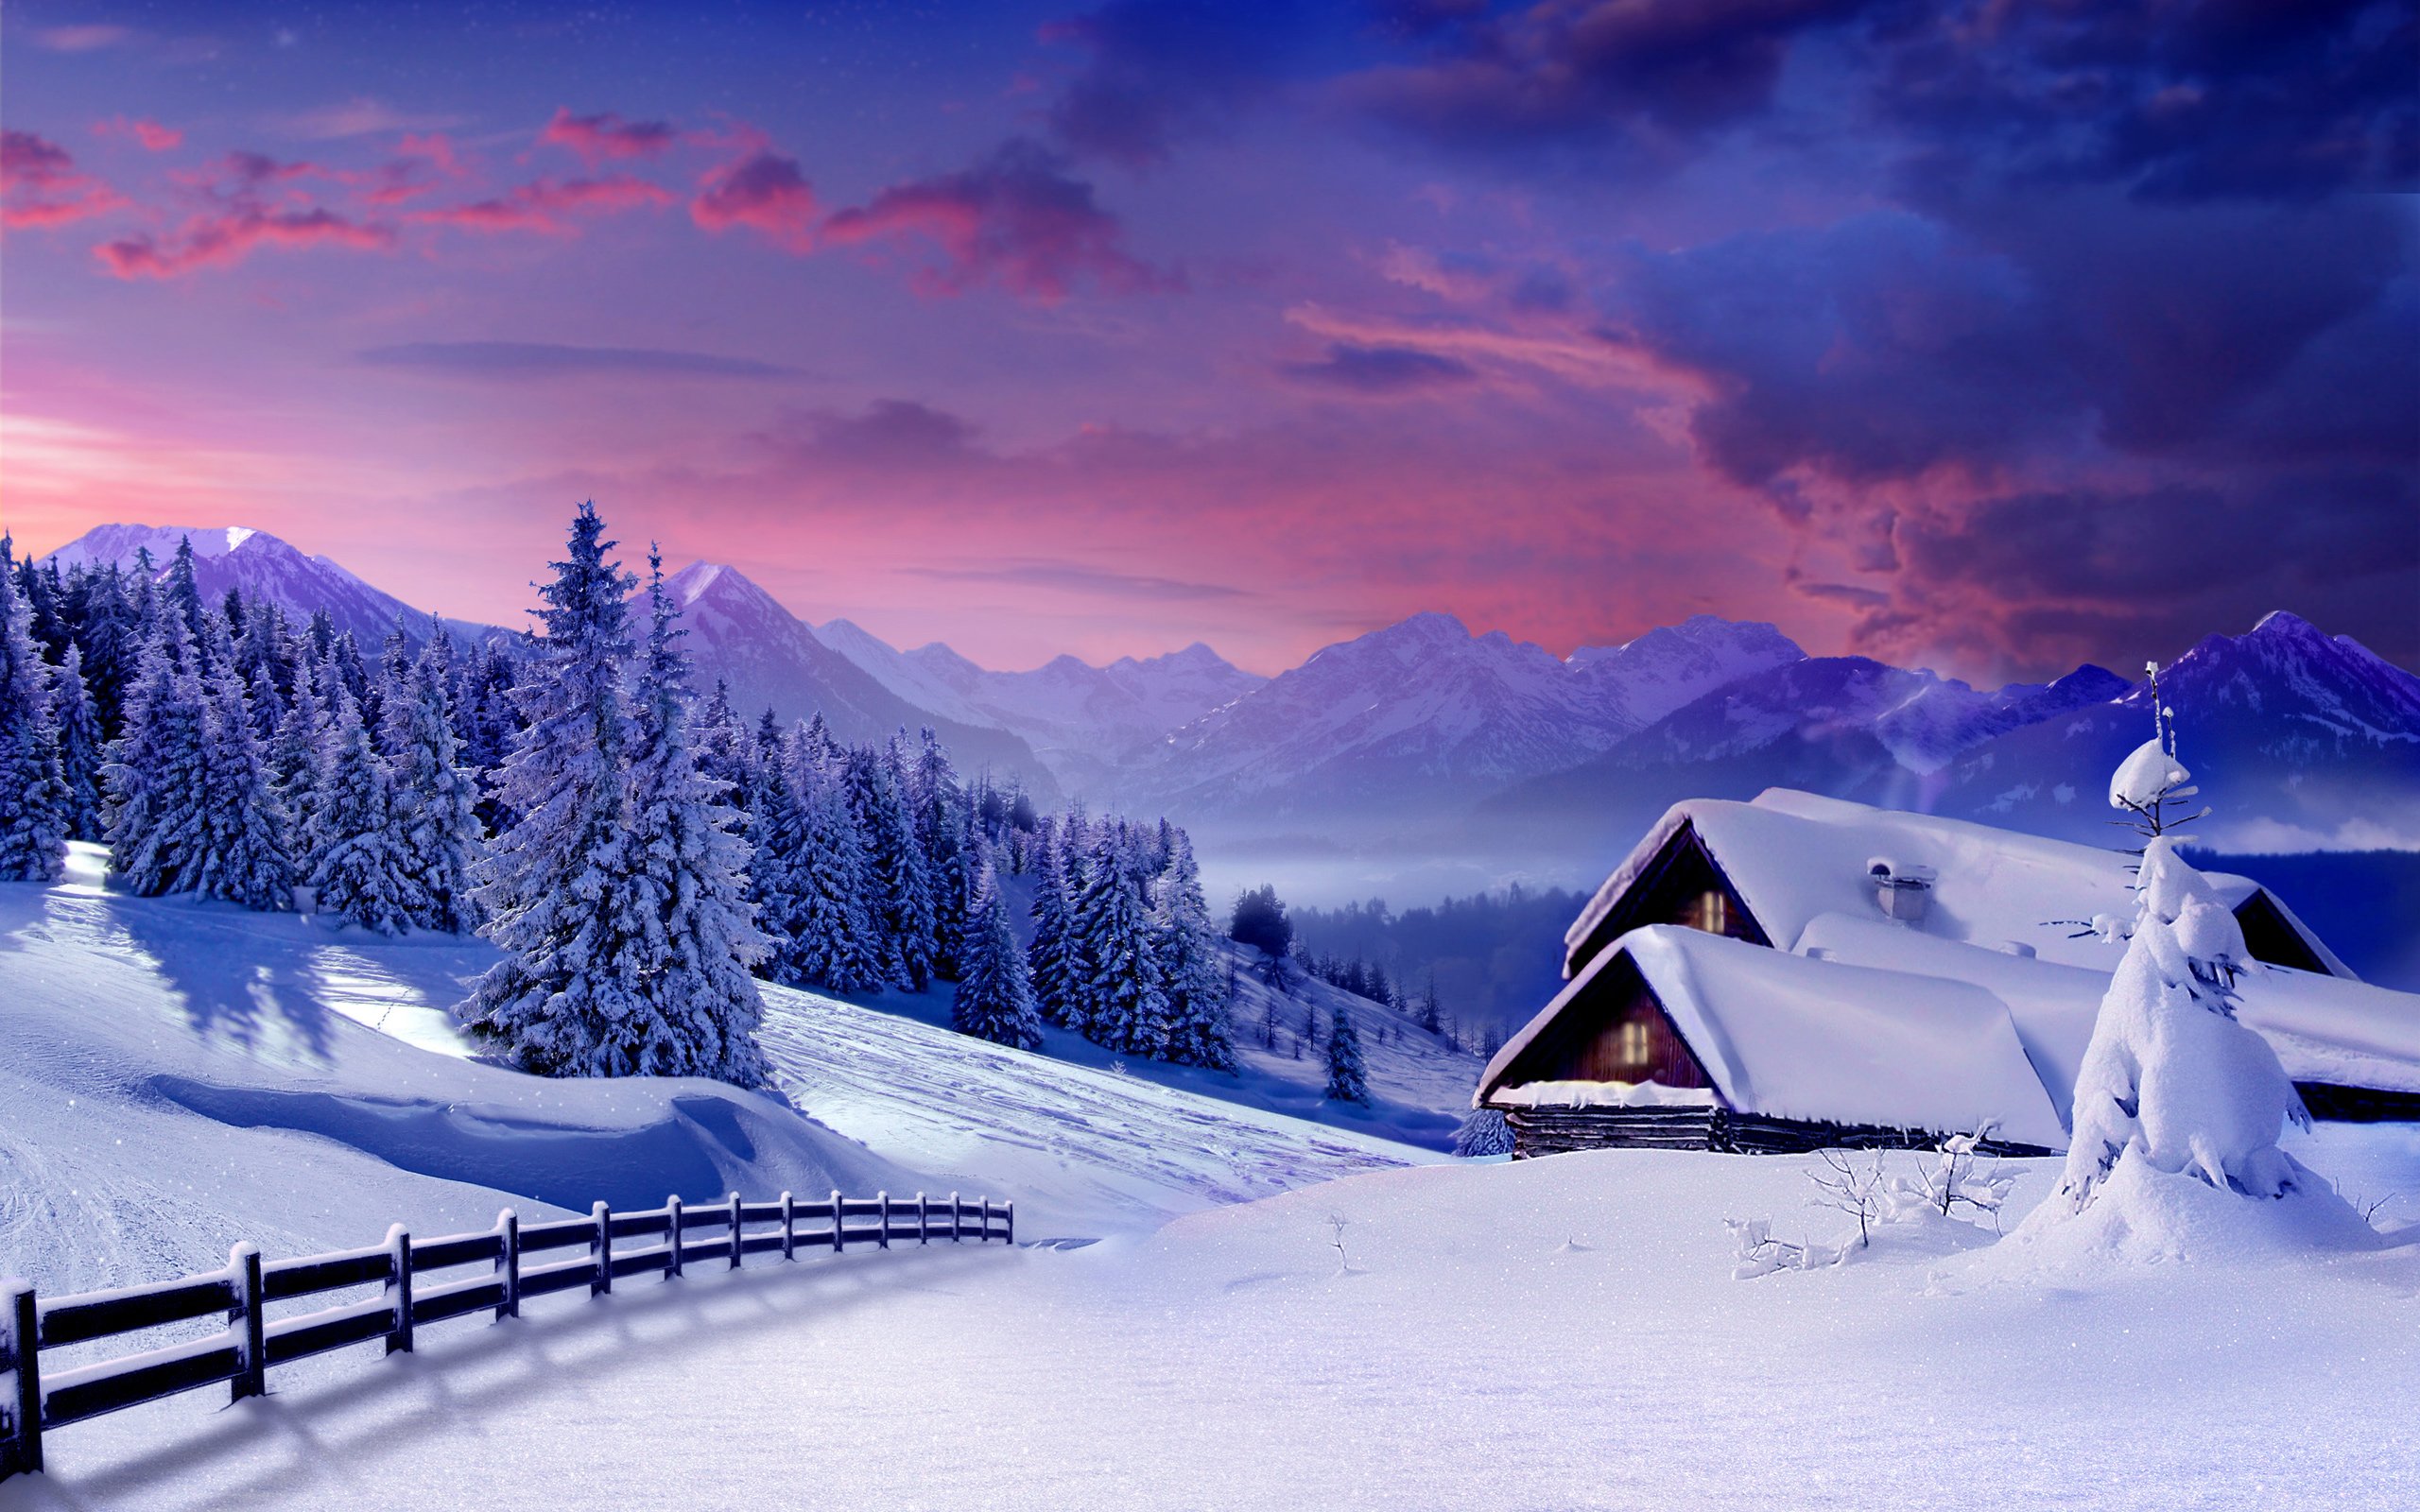 Winter HD Wallpapers Winter Desktop Wallpapers Nature Winter 2560x1600